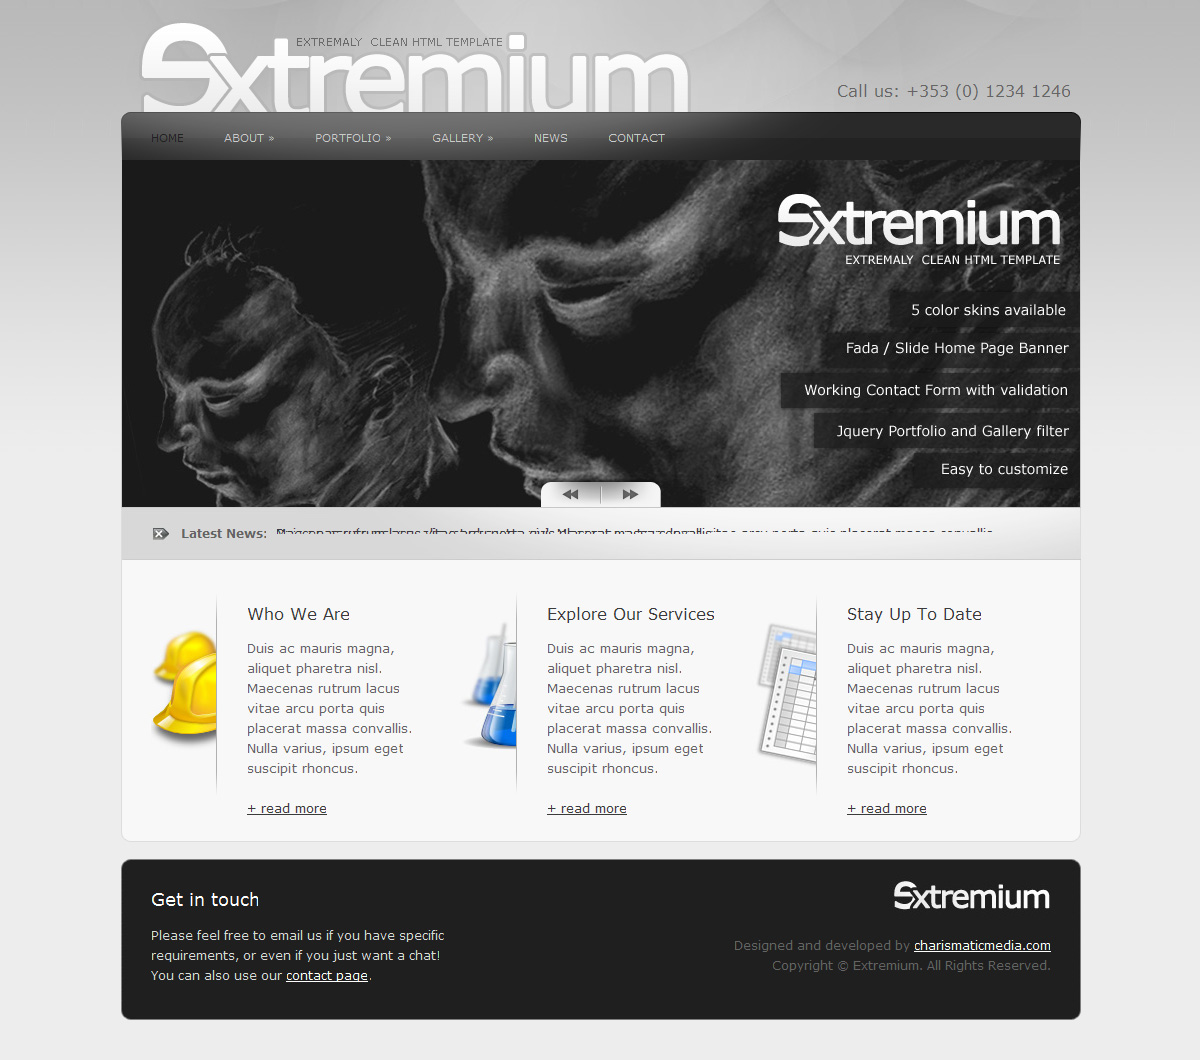 Extremium - 6 in 1 Extremely Clean HTML Template - Extremium Home Page - Light